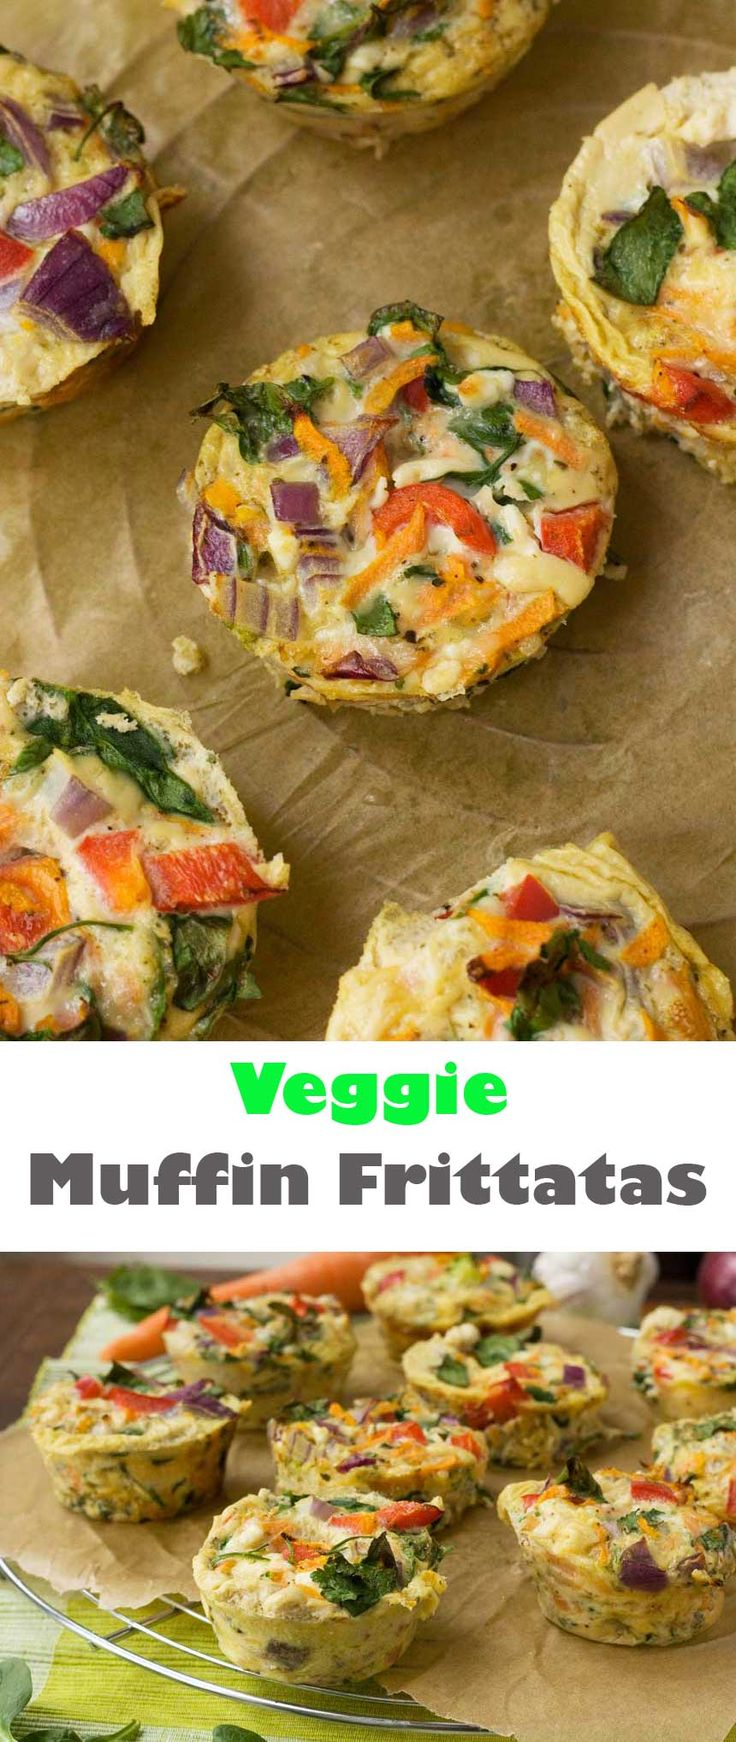 Get healthy with the help of these veggie muffin frittatas - for something a little different at breakfast time!